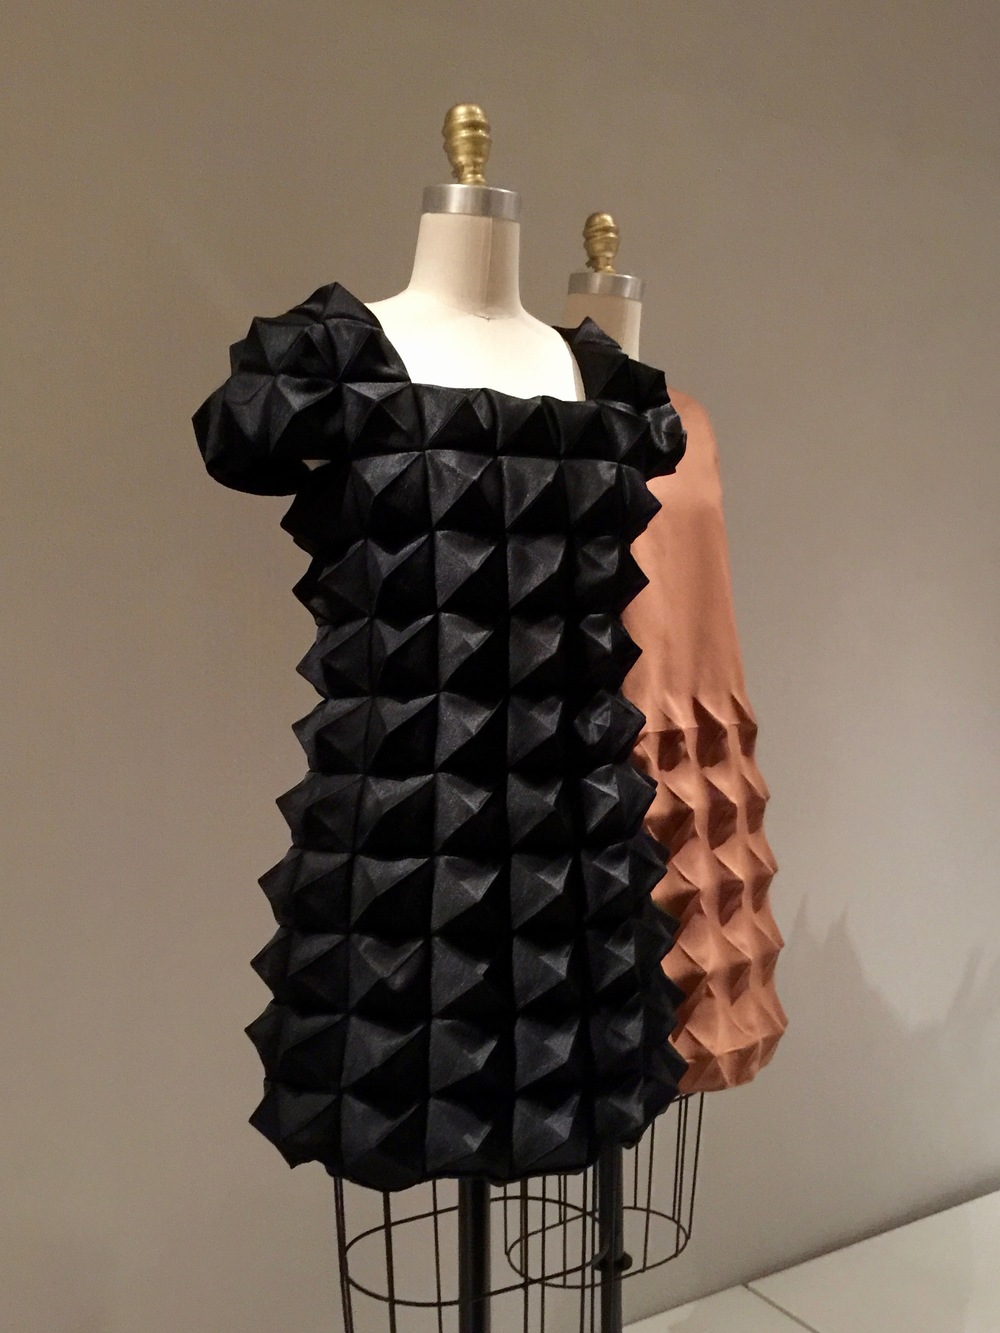 (l) COMME DES GARCONS, Junya Watanabe DRESS, Autumn/Winter 2015-6, pret-a-porter Machine-sewn, heat molded black polyester satin  (r) Pierre Cardin DRESS, 1968, haute couture Machine-sewn, heat-molded brown polyester Cardine (Dynel)